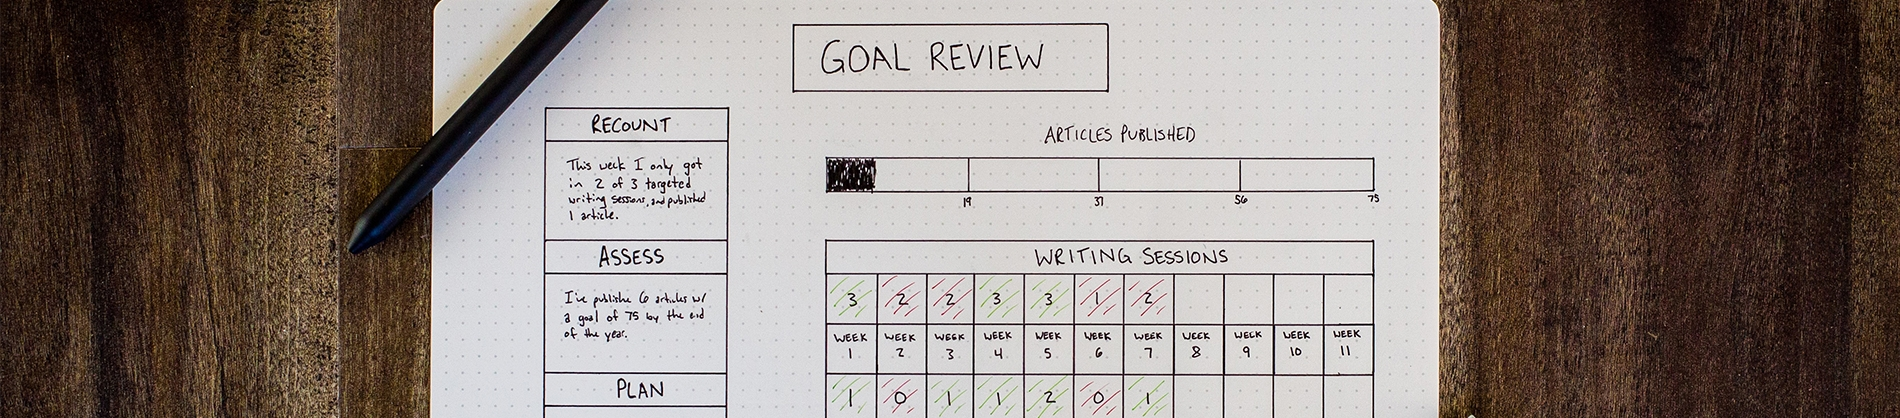 Goal review and calendar written on a piece of dotted paper